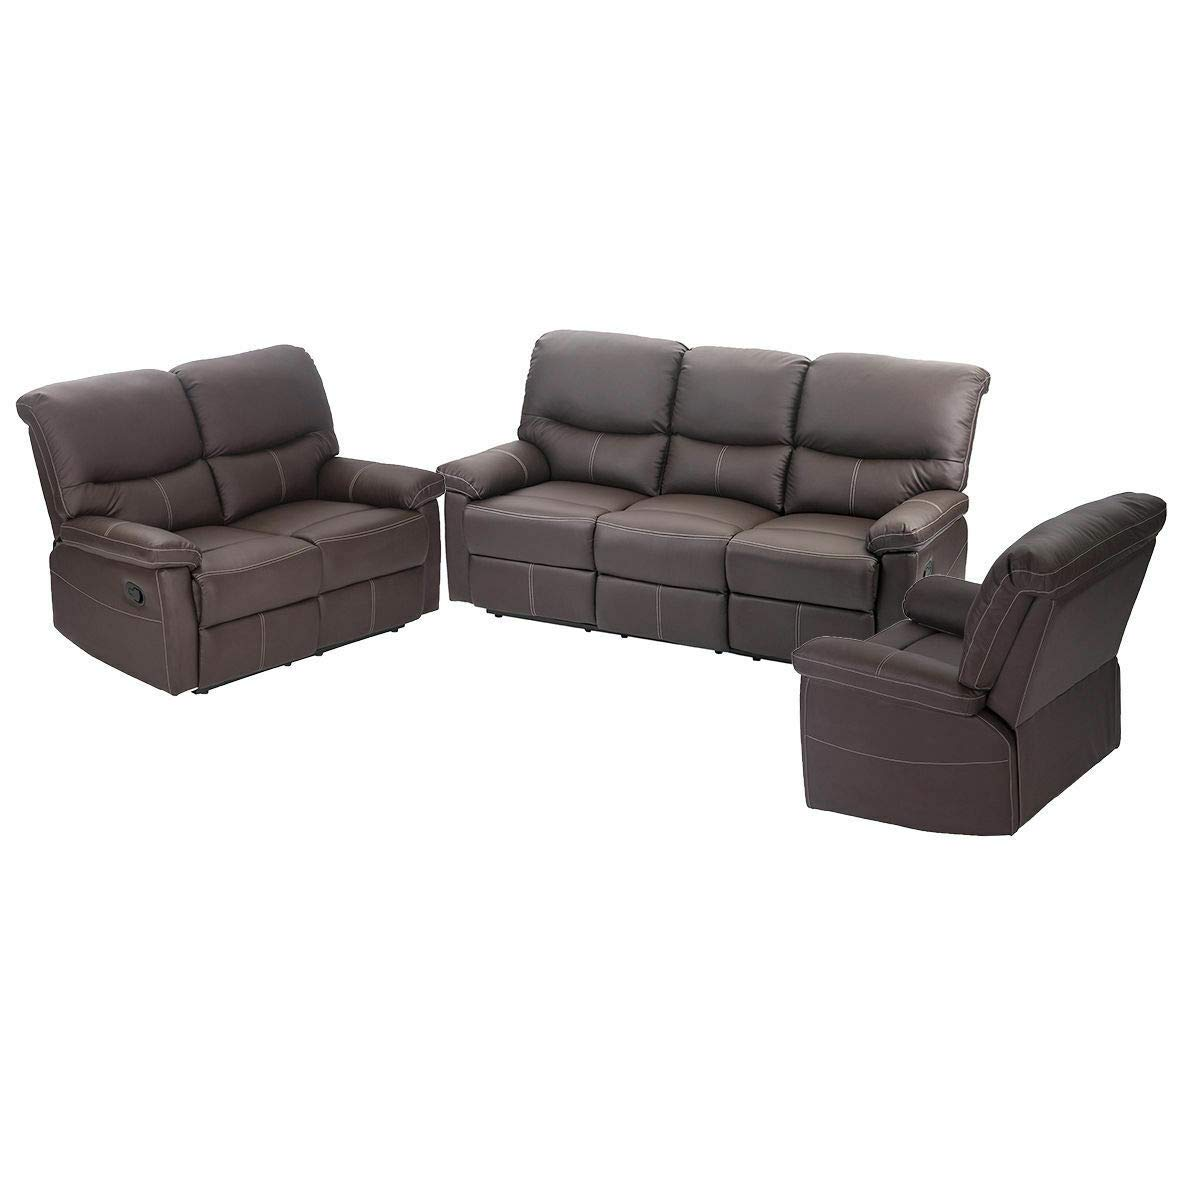 Amazon.com: 9TRADING New Loveseat Chaise Couch Recliner 3+2+ ...